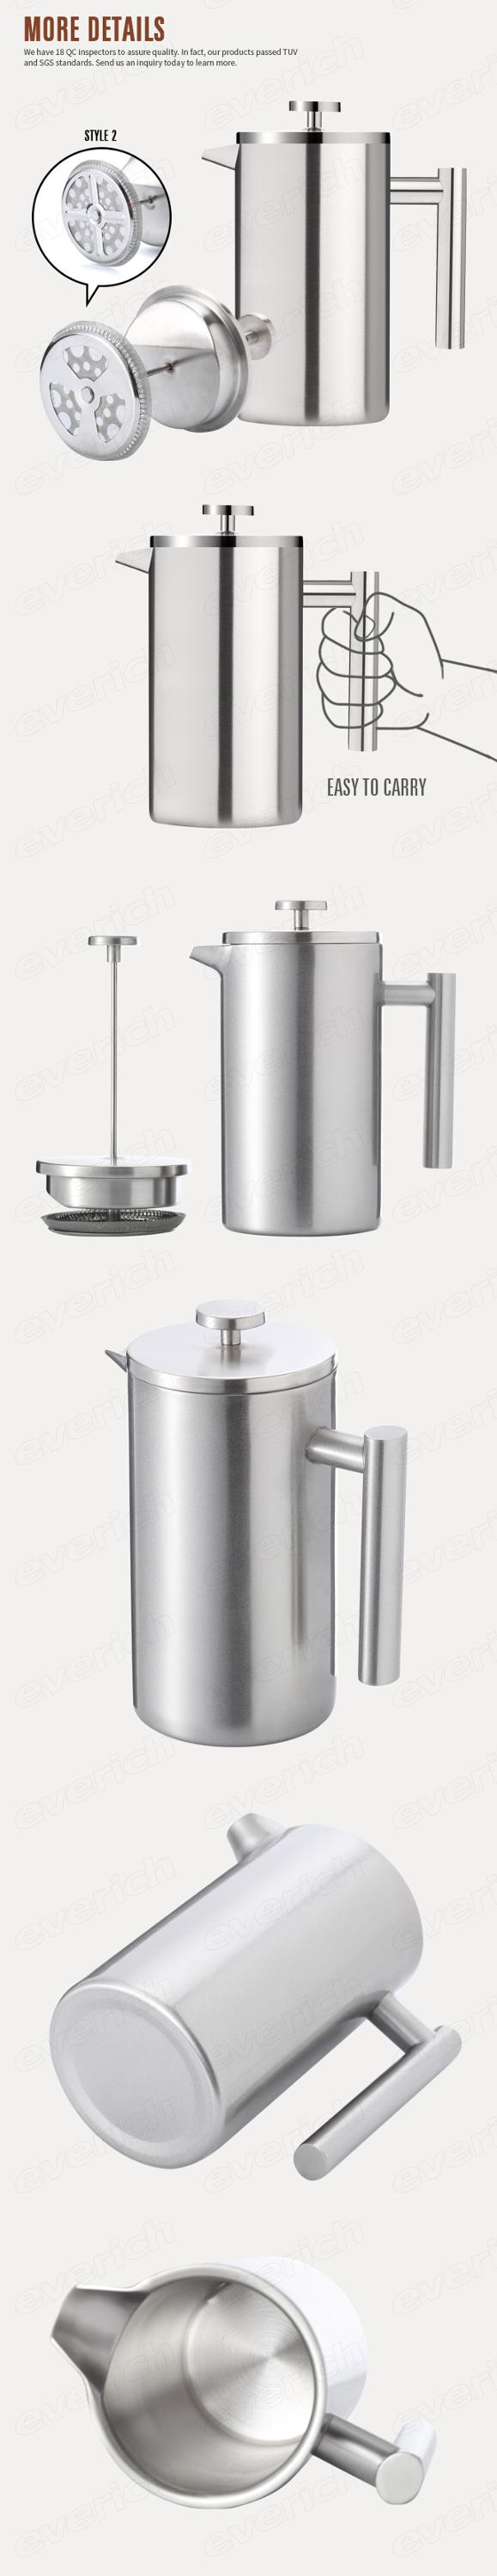 Everich Grosir Stainless Steel Kopi Bahasa Perancis Press Portable French Press